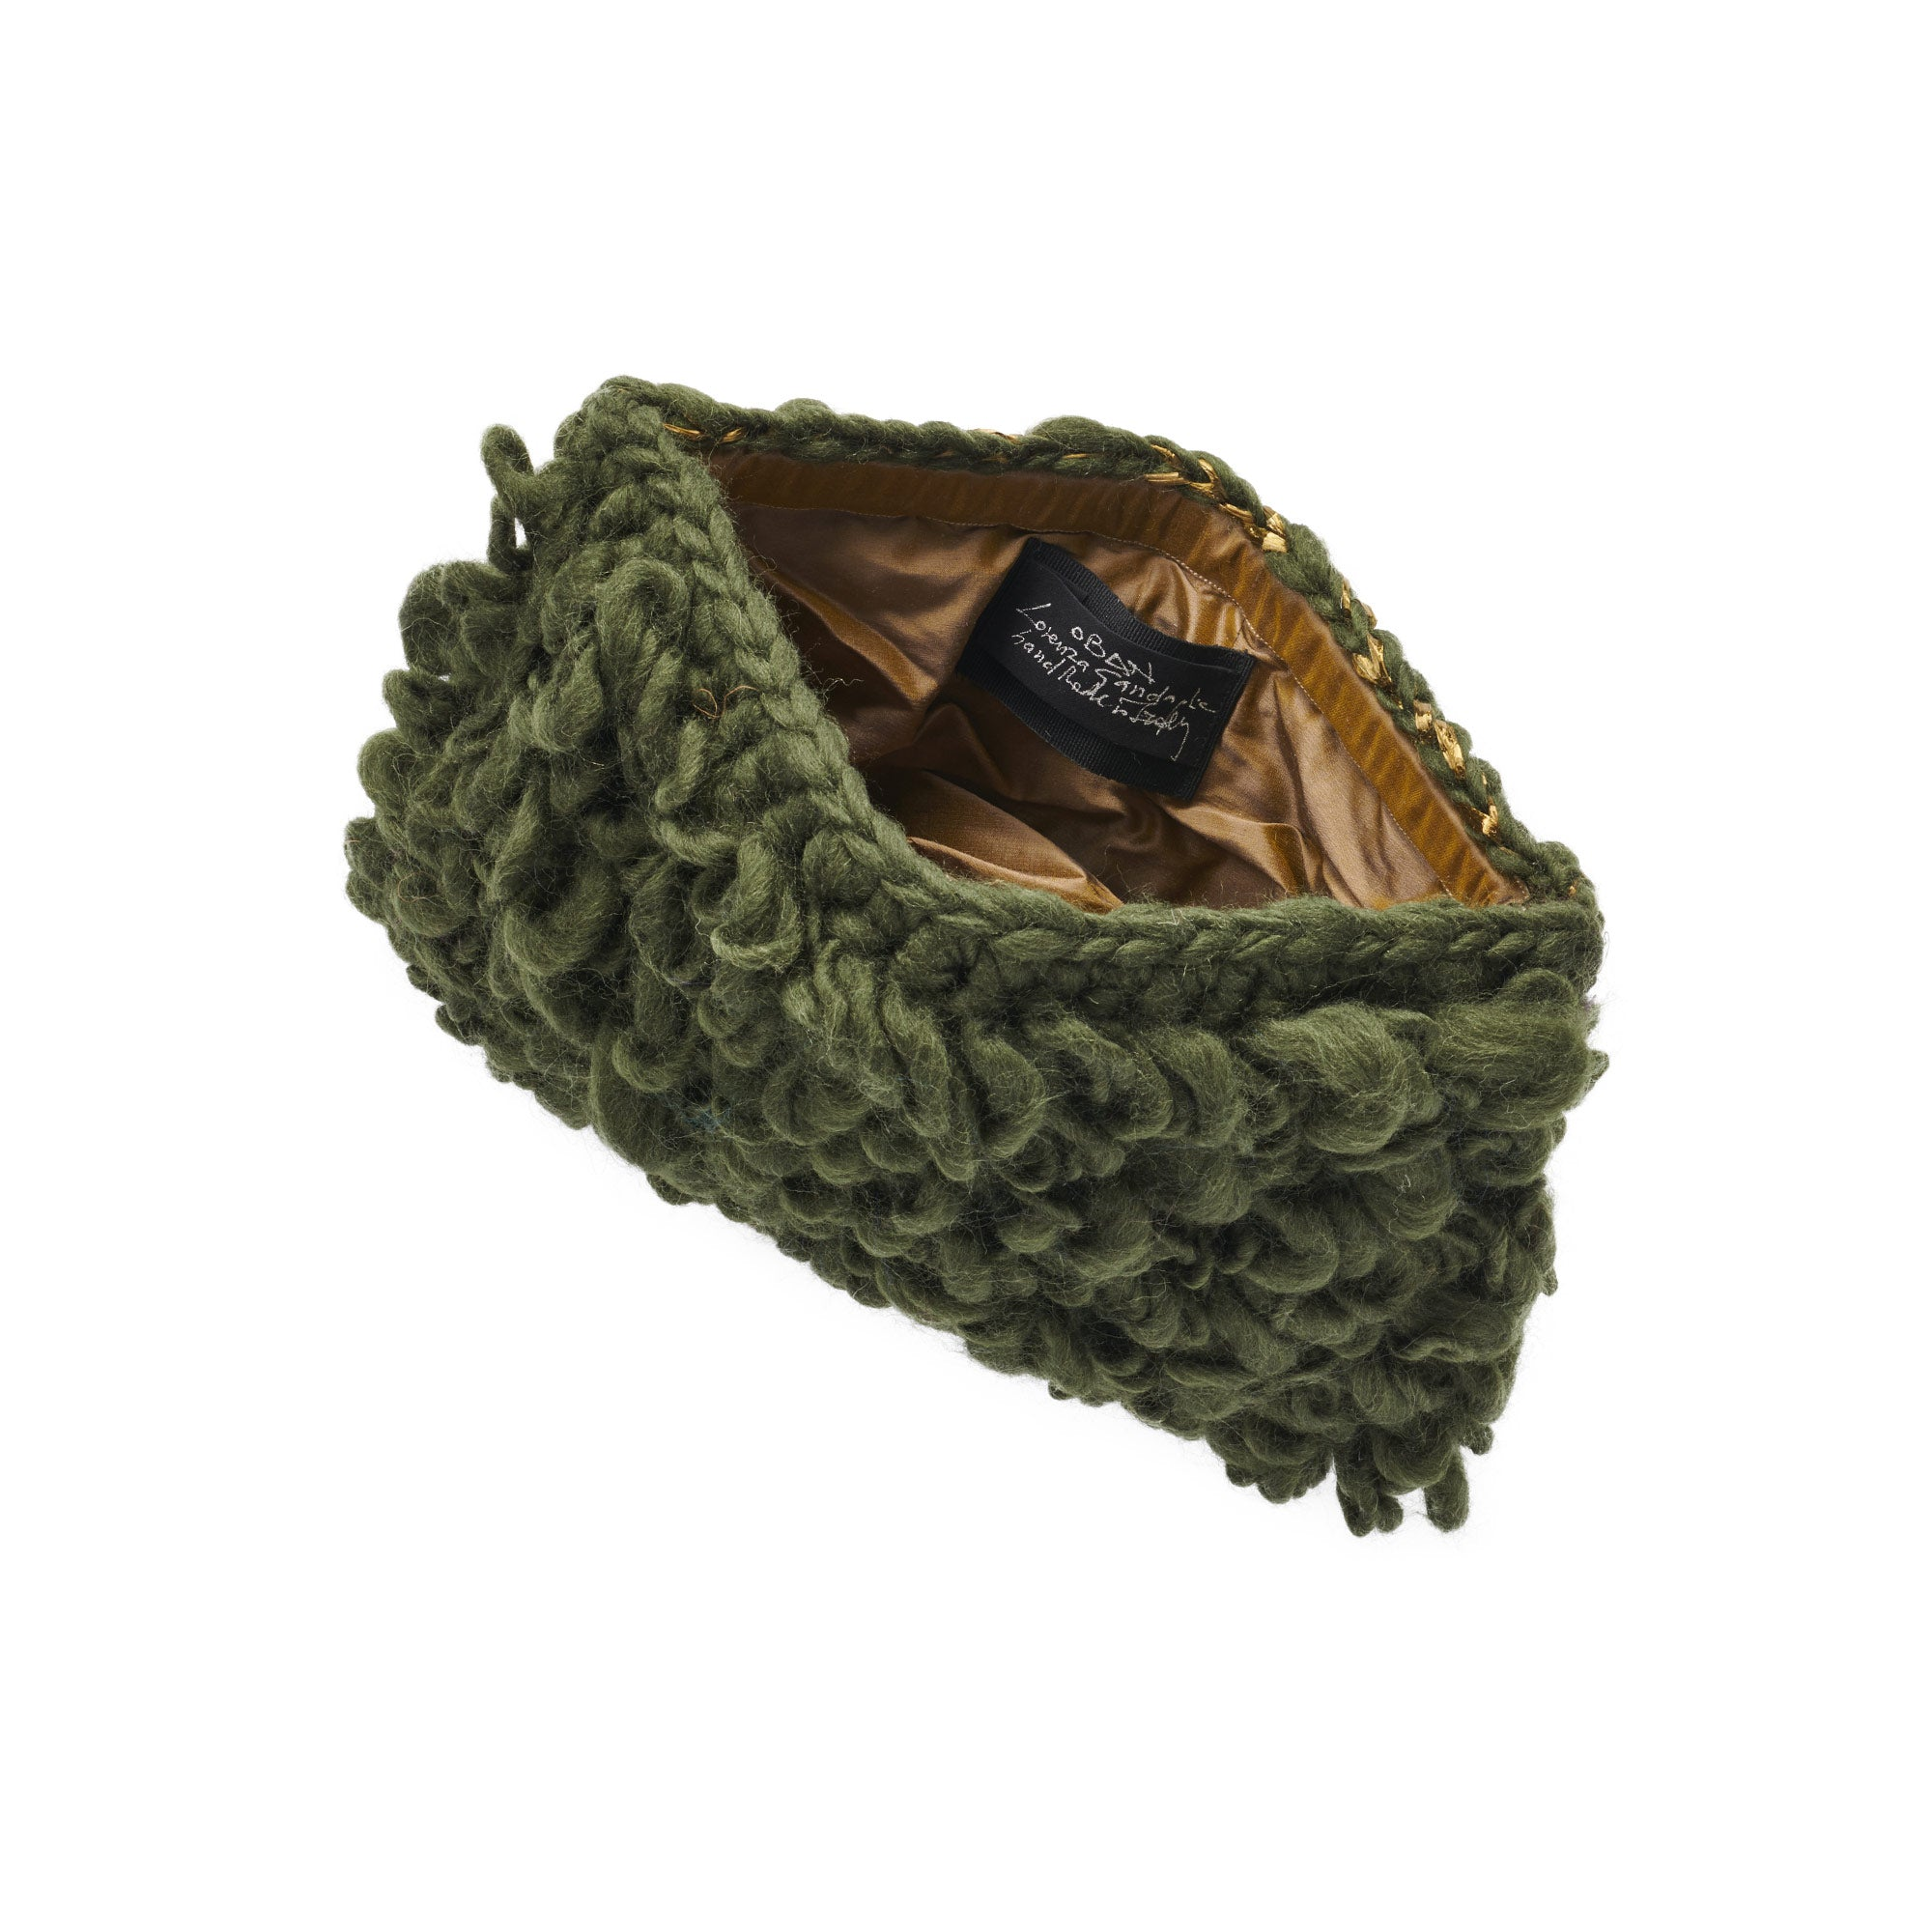 Oban Wool Clutch